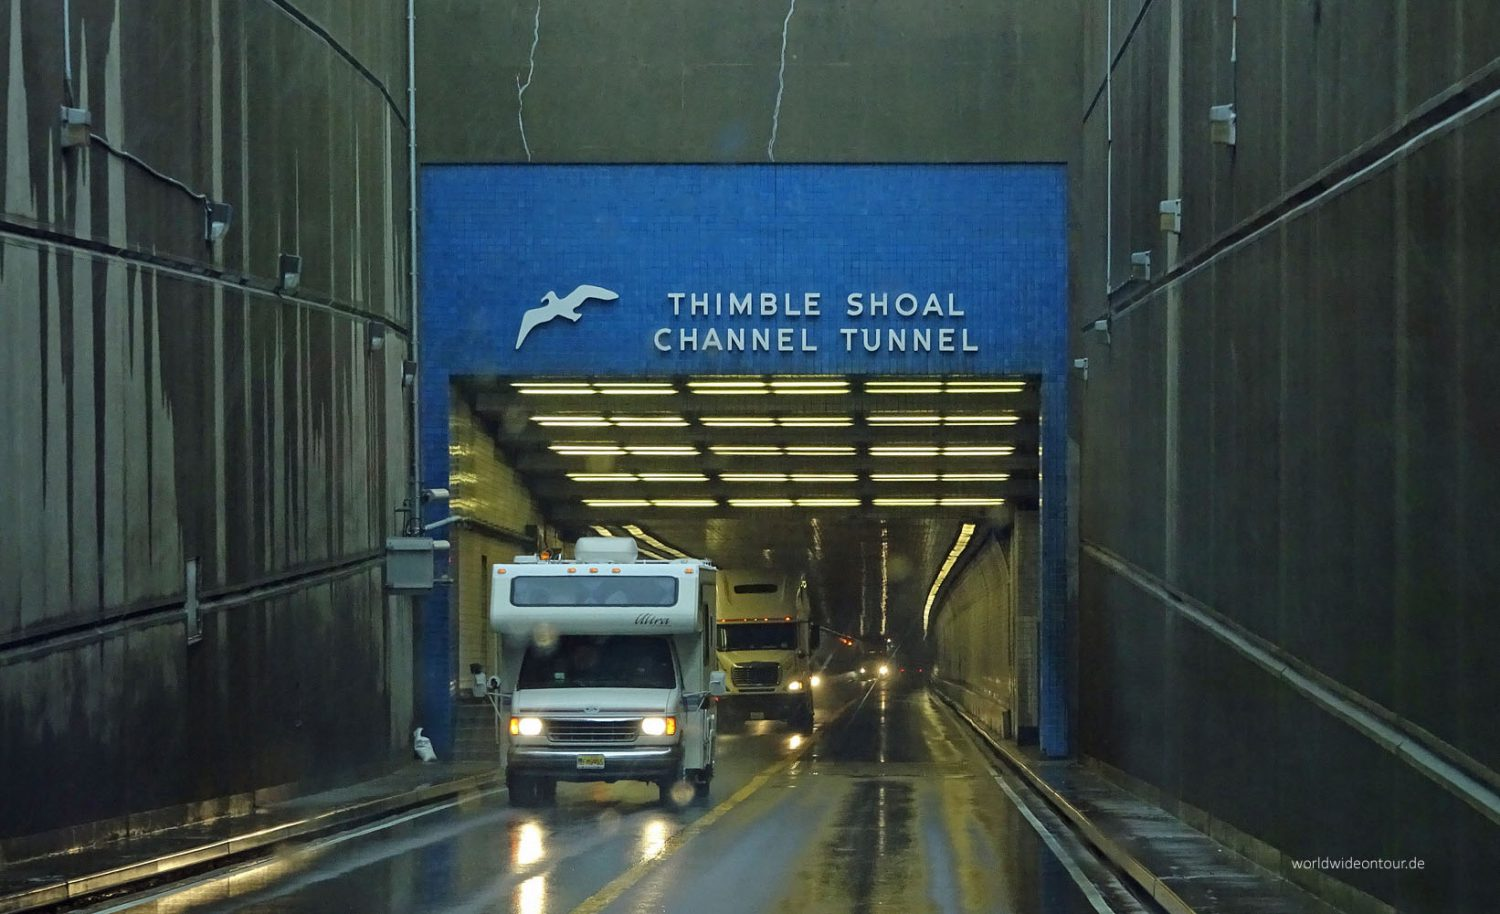 Der Timble-Shoal-Channel-Tunnel.